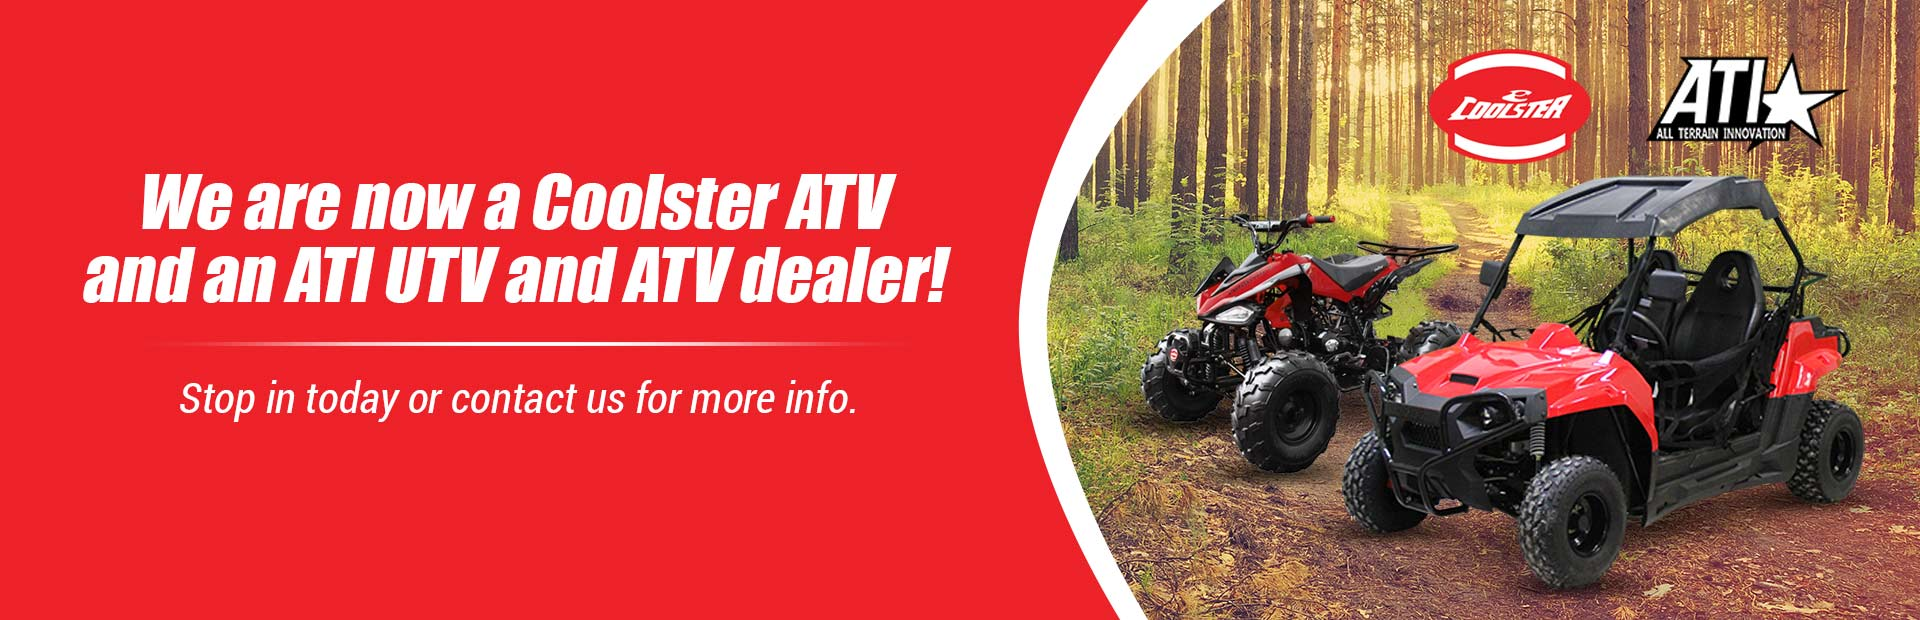 We are now a Coolster ATV and an ATI UTV and ATV dealer! Stop in today or contact us for more info.